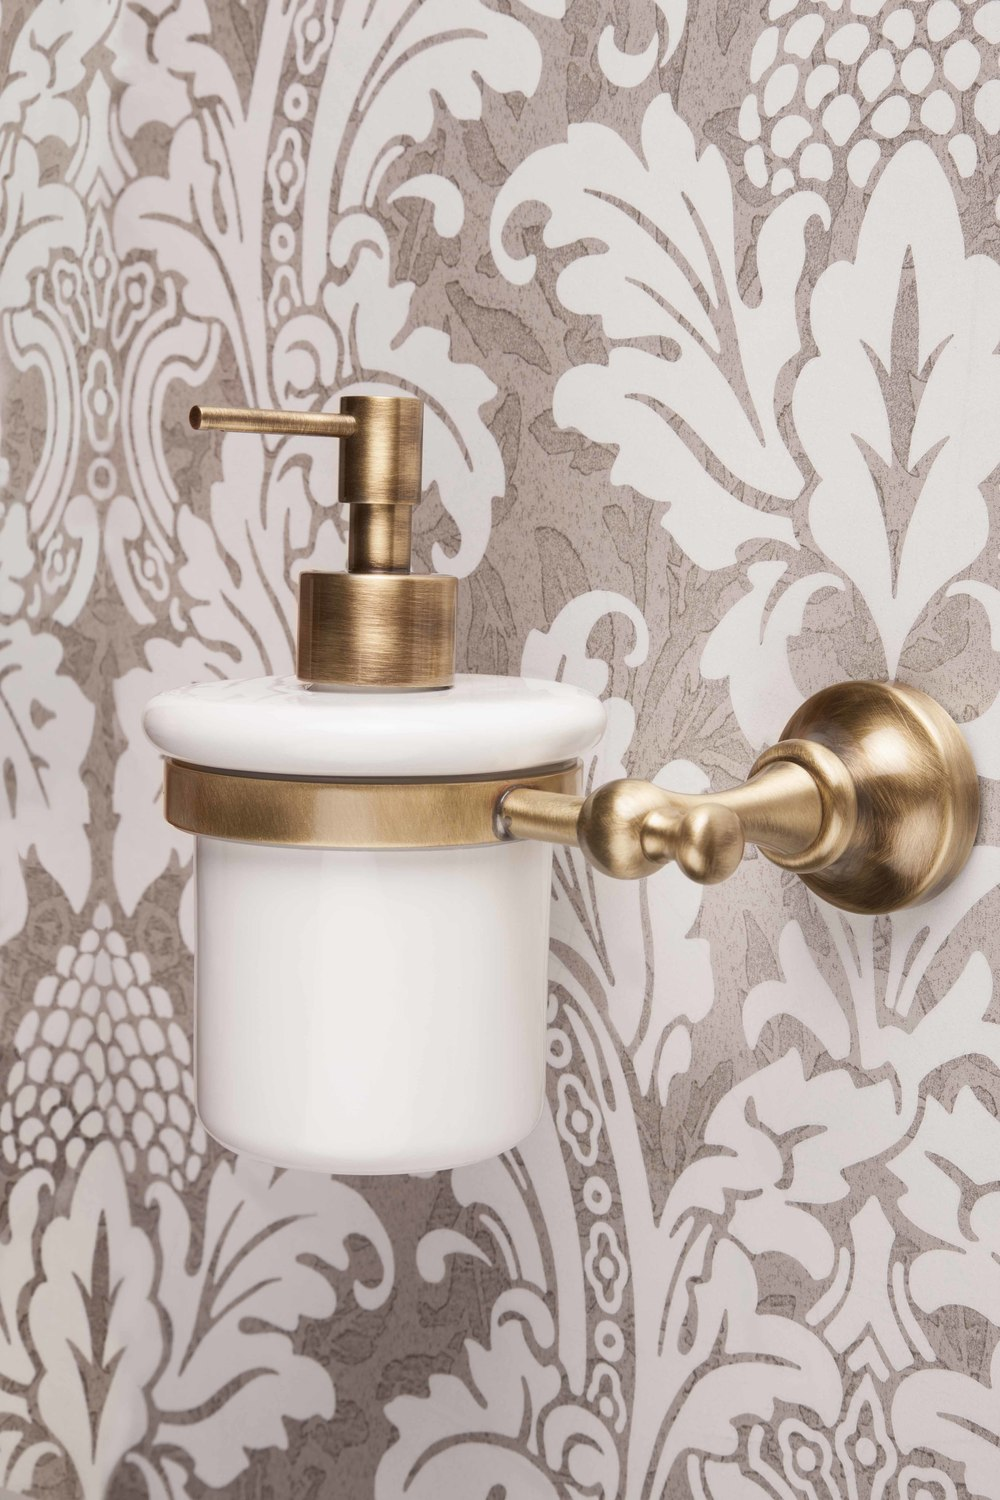 bathroom accessories luxury bathrooms glasgow - Bathroom Accessories Luxury